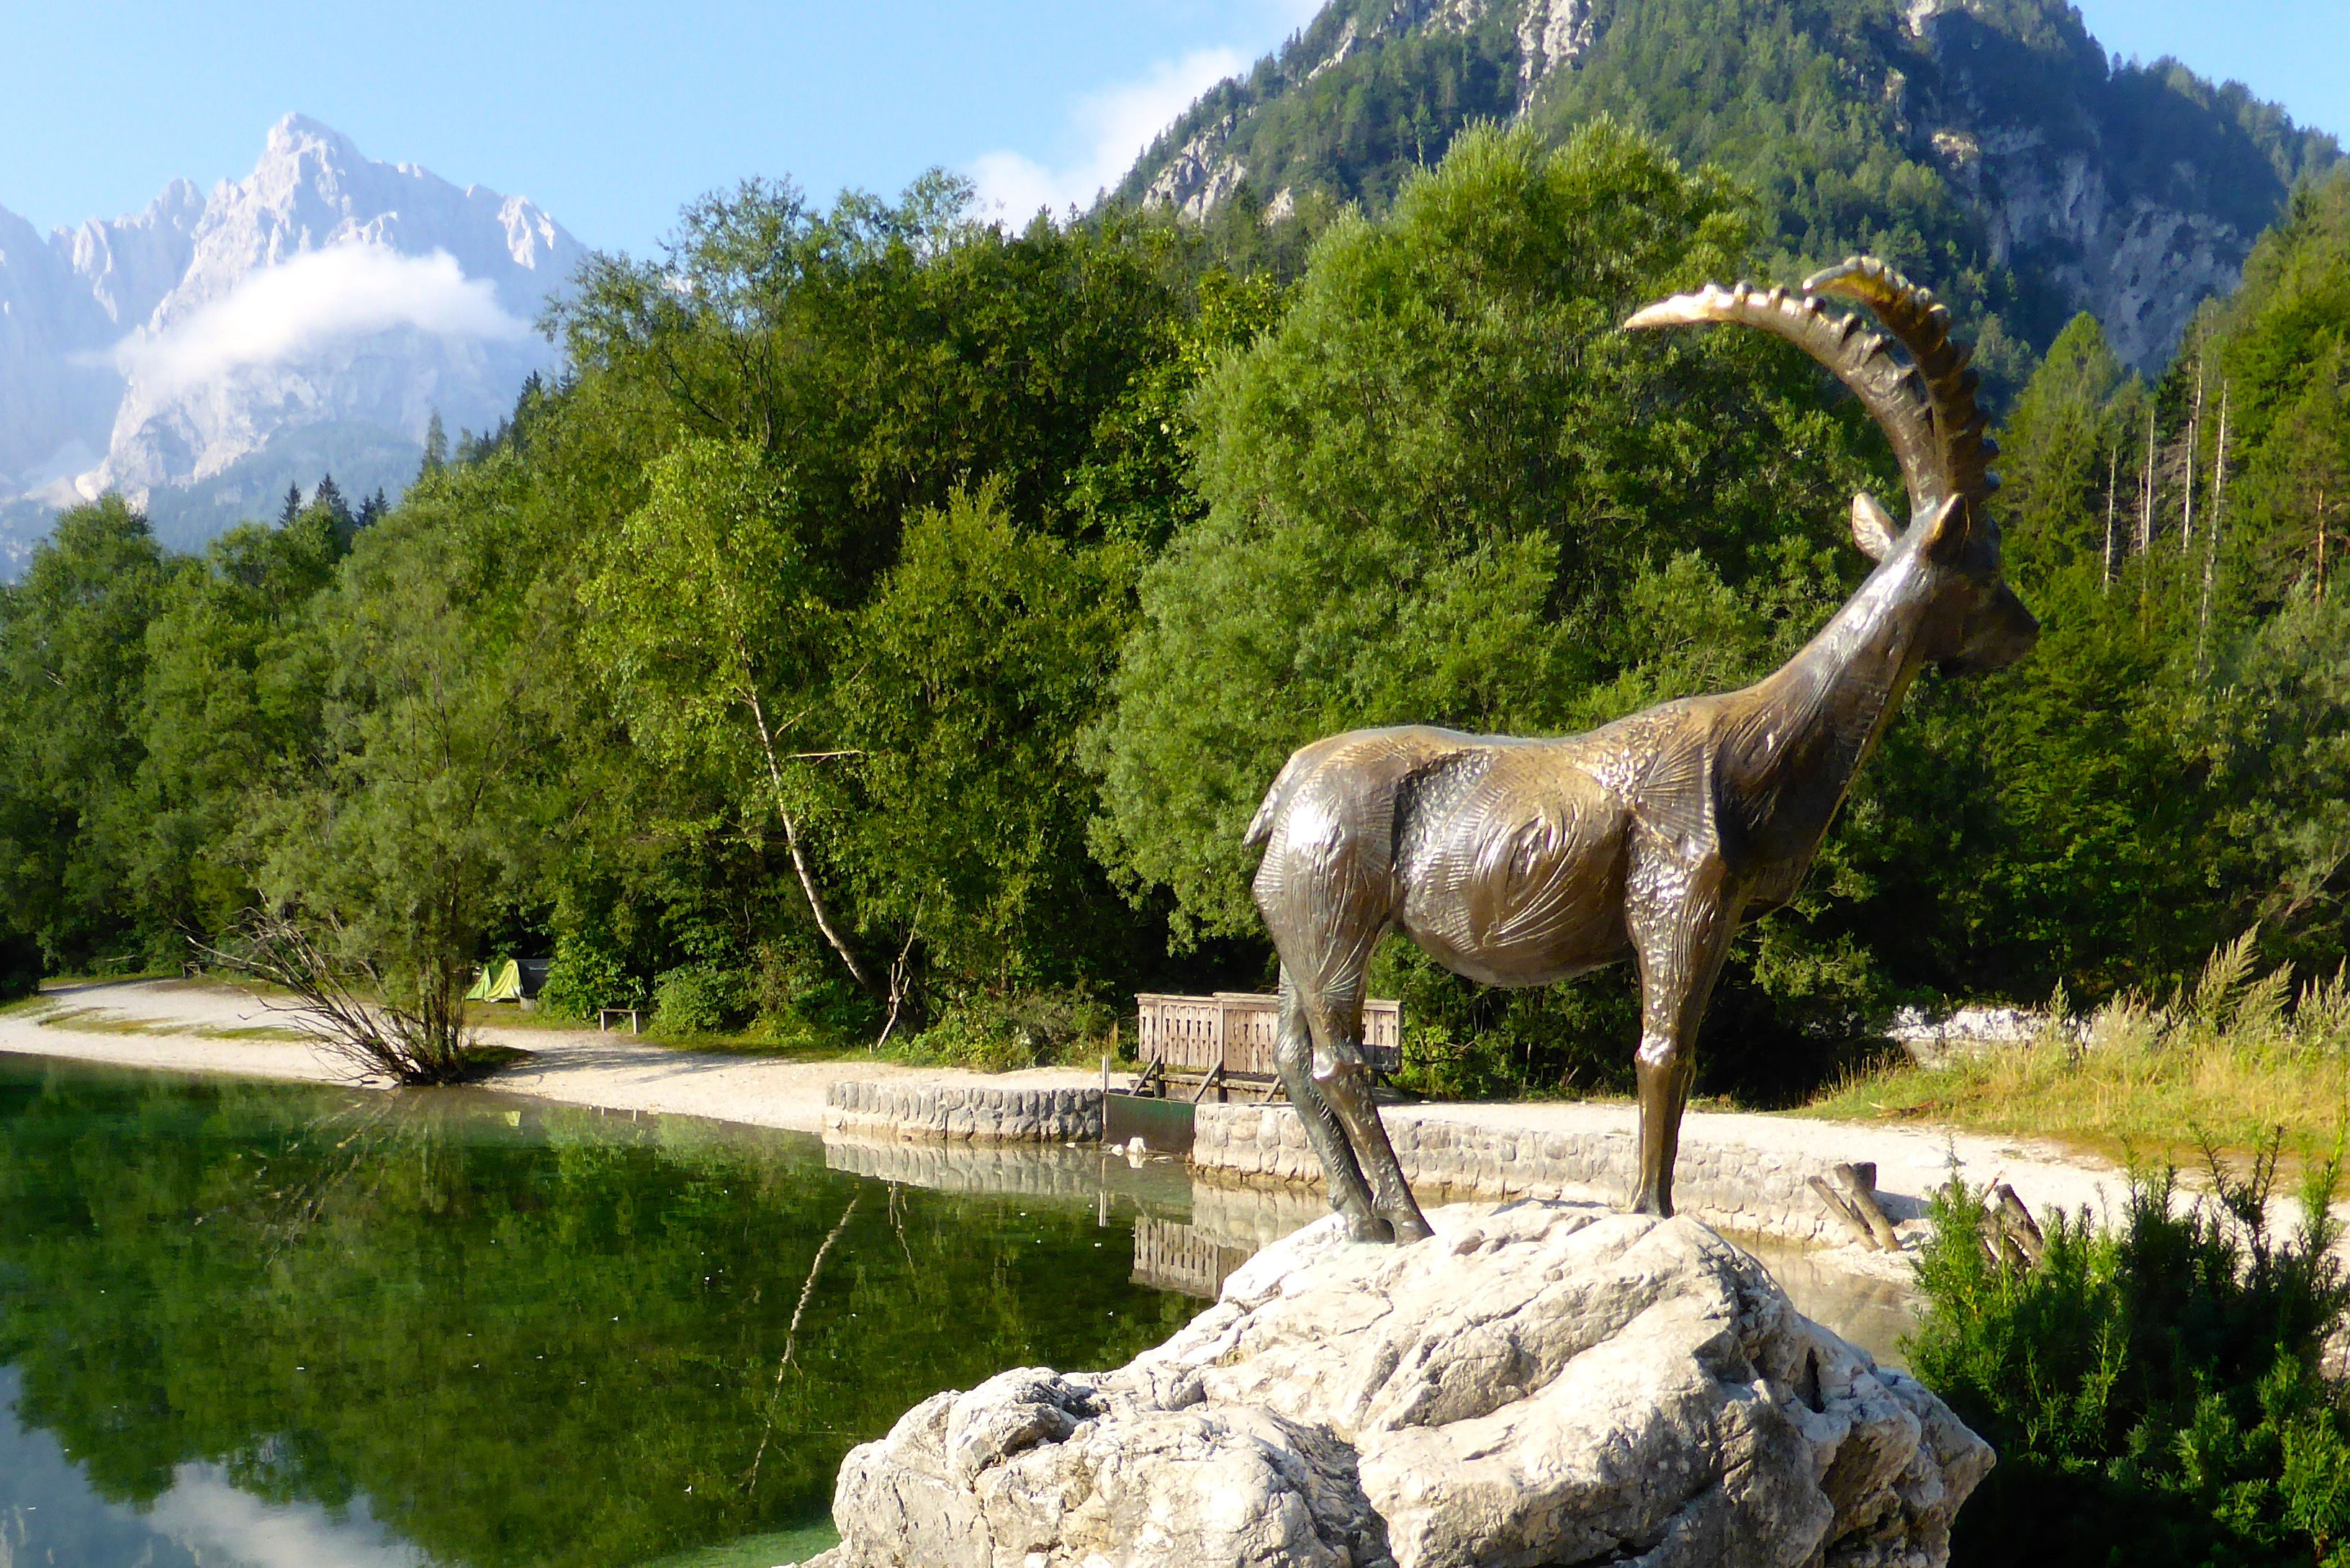 The statue of Goldhorn at the Lake Jasna, Kranjska Gora, Slovenia